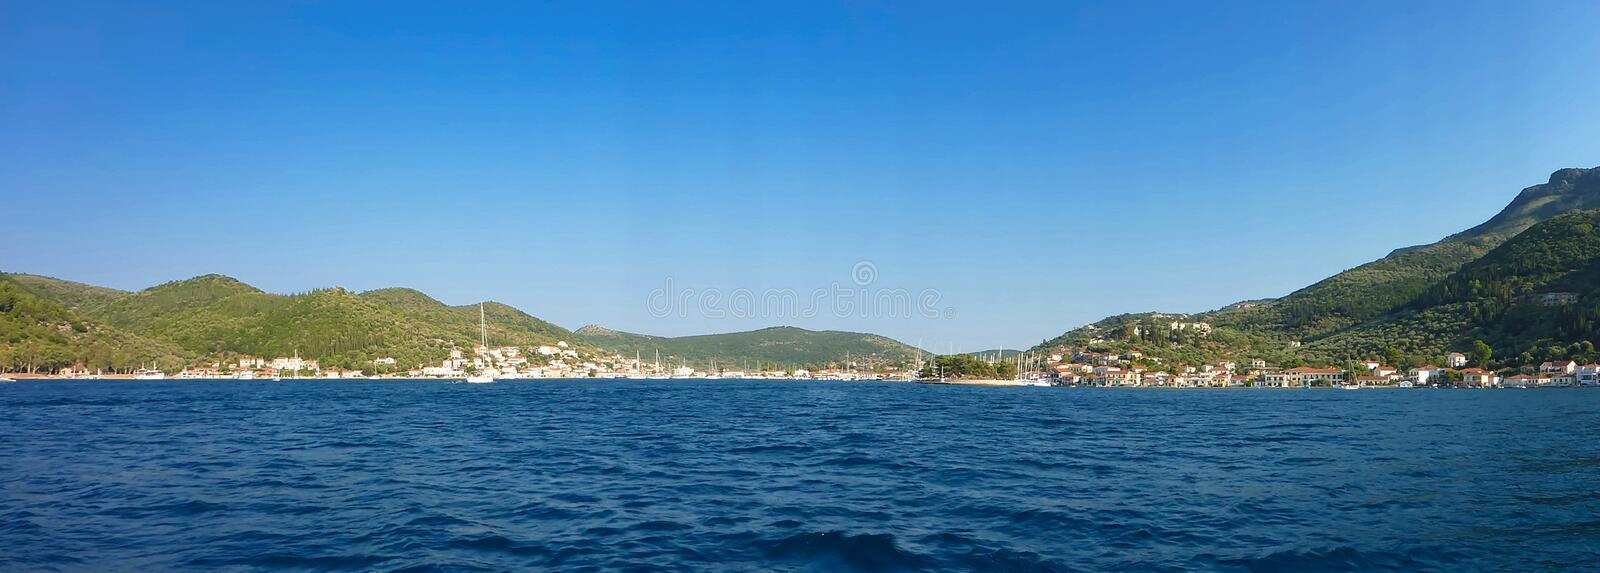 August 7th, 2018. Panoramic view of Vathi or Vathy or Port Vathi is the capital and main harbour of the island of Ithaca in the. Ionian Sea of Greece. Photo royalty free stock image